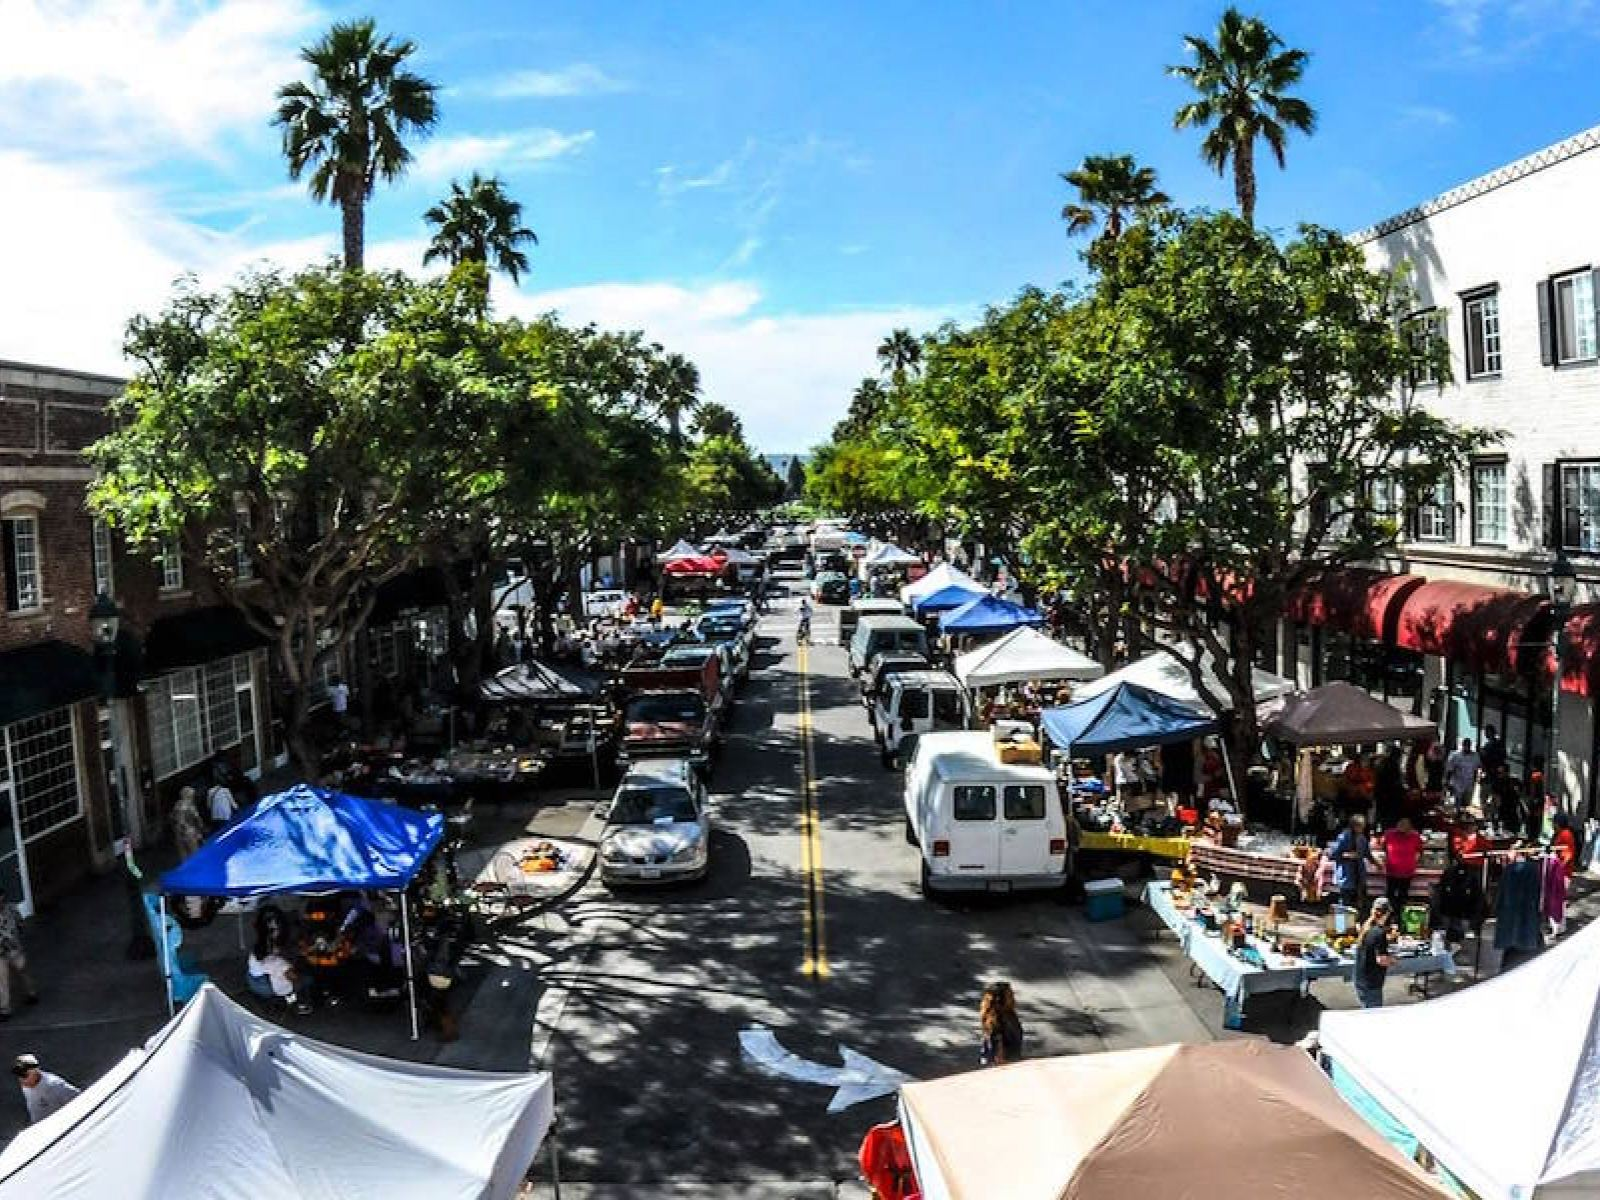 Main image for event titled Torrance Antique Street Faire